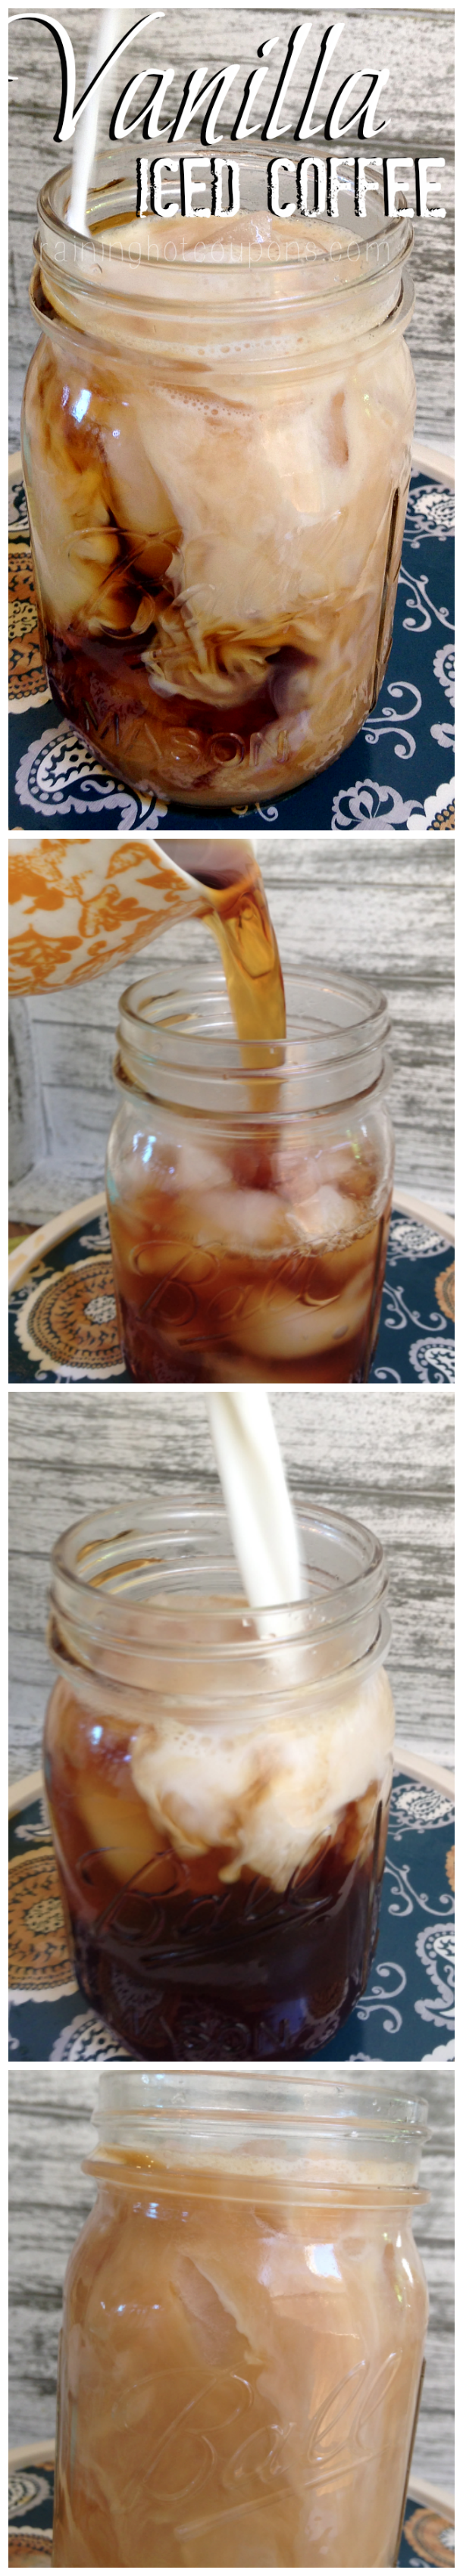 vanilla iced coffee collage.png